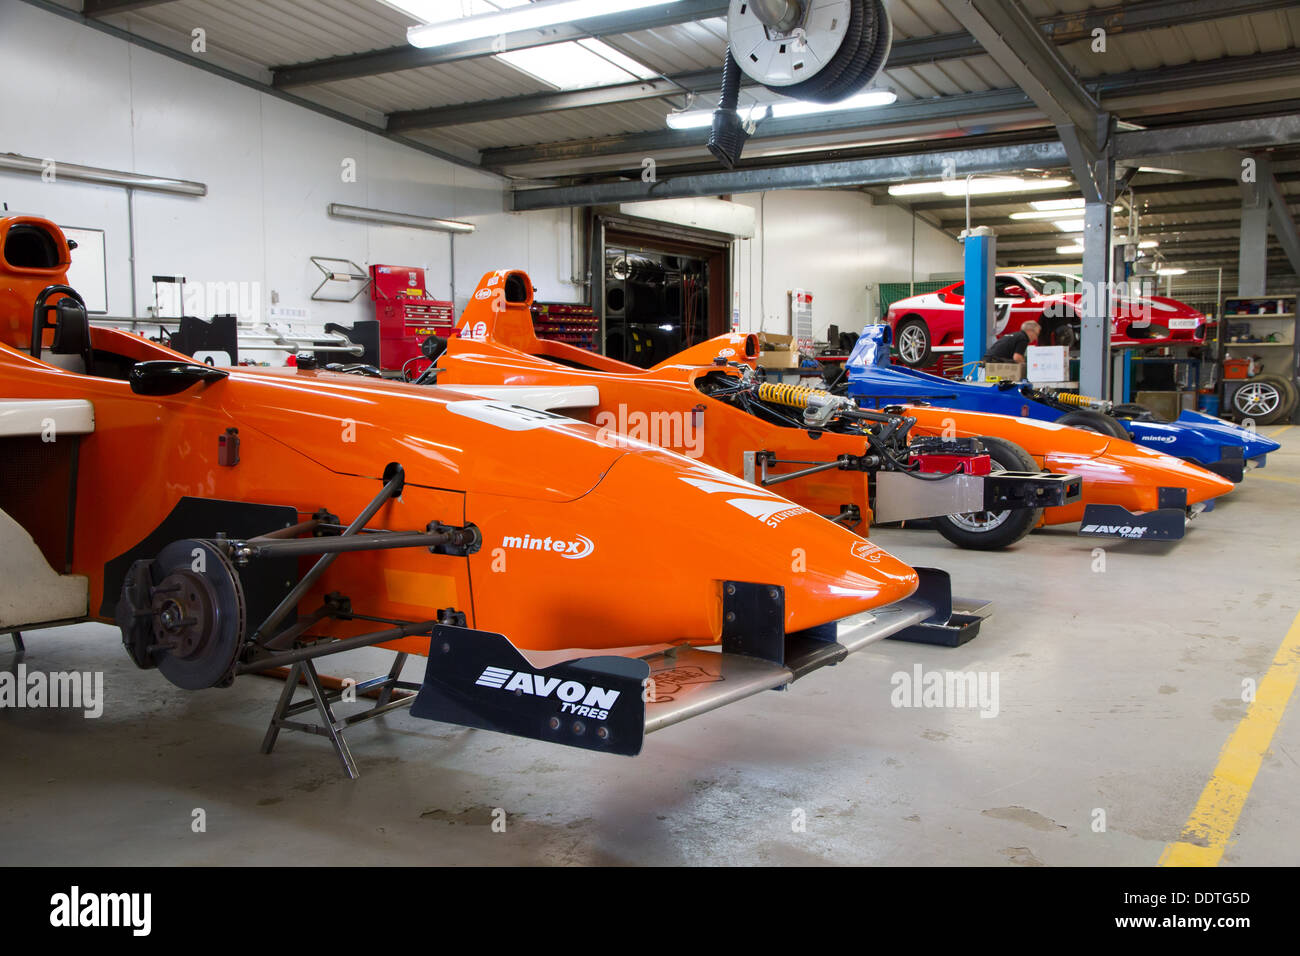 Formula Silverstone single seater racing cars in the garage, used for driving experiences at Silverstone Racing Circuit. - Stock Image